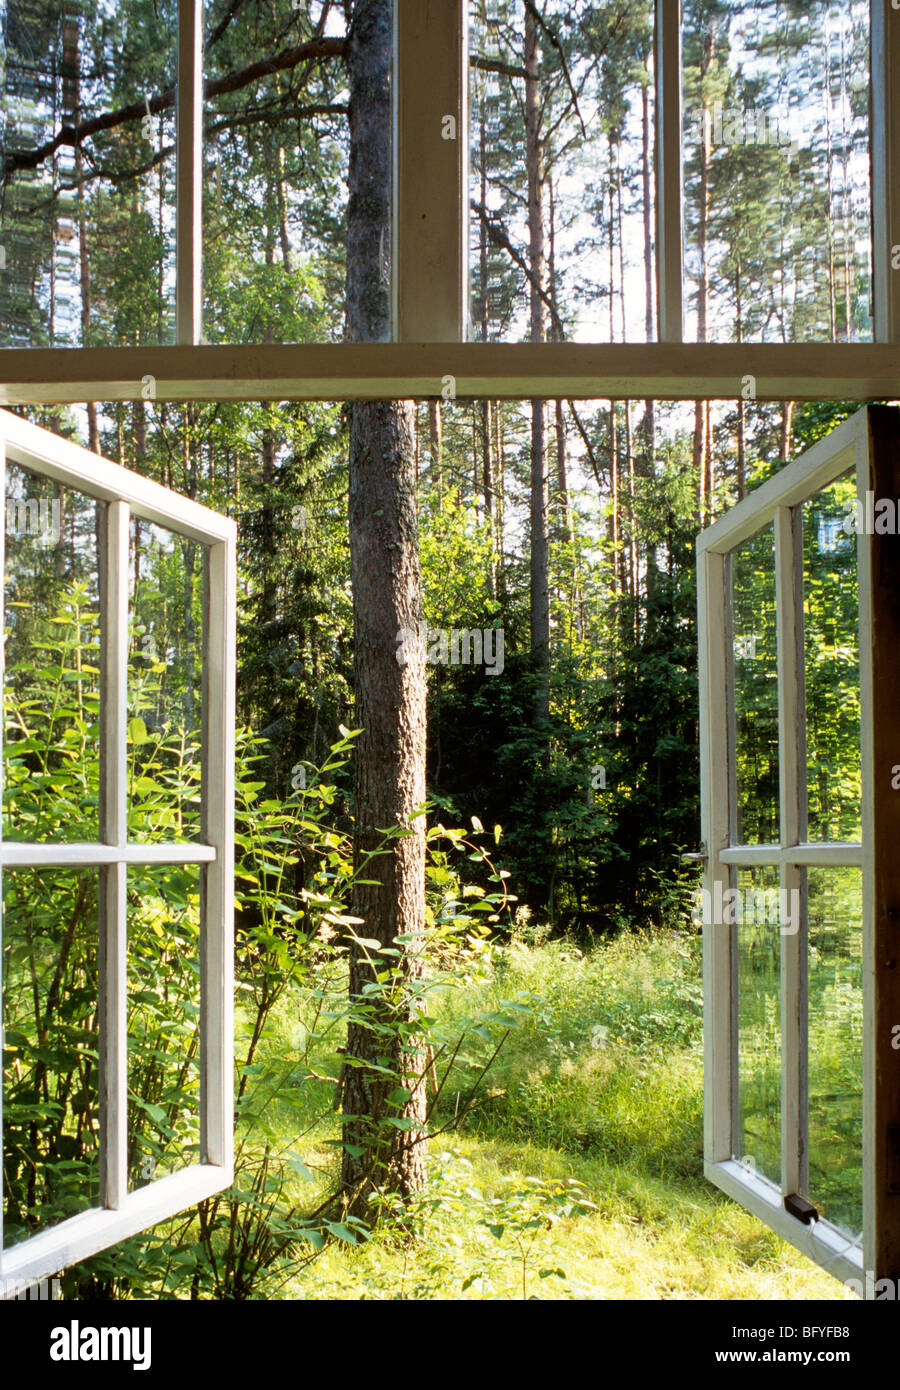 Open windows looking out into woodland near St Petersburg, Russia Stock Photo